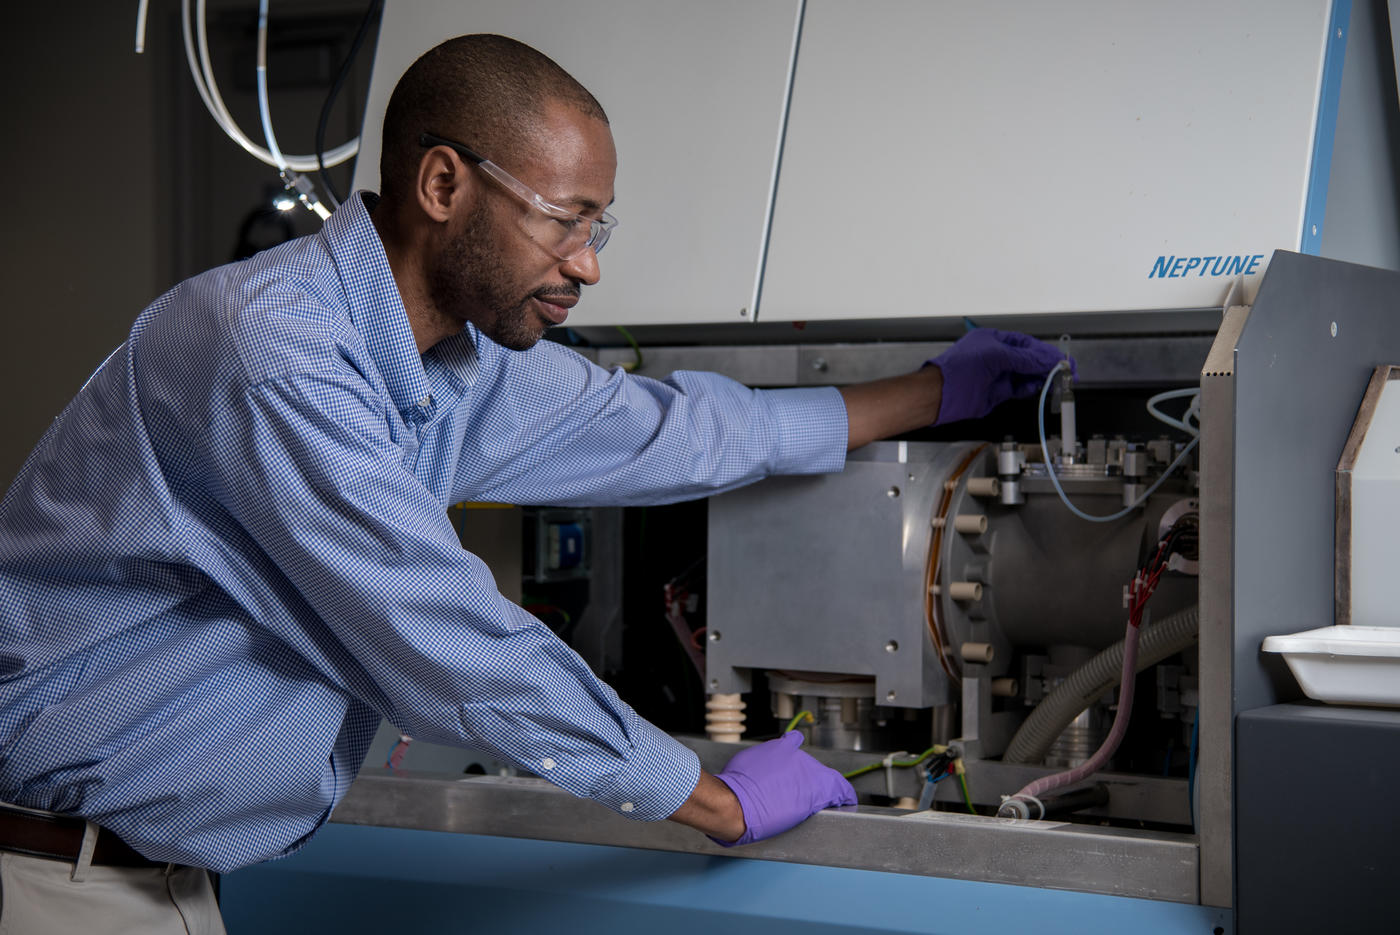 Chemist Savelas Rabb is bent over slightly, using a tool to check on the settings inside of a large instrument known as a mass spectrometer.